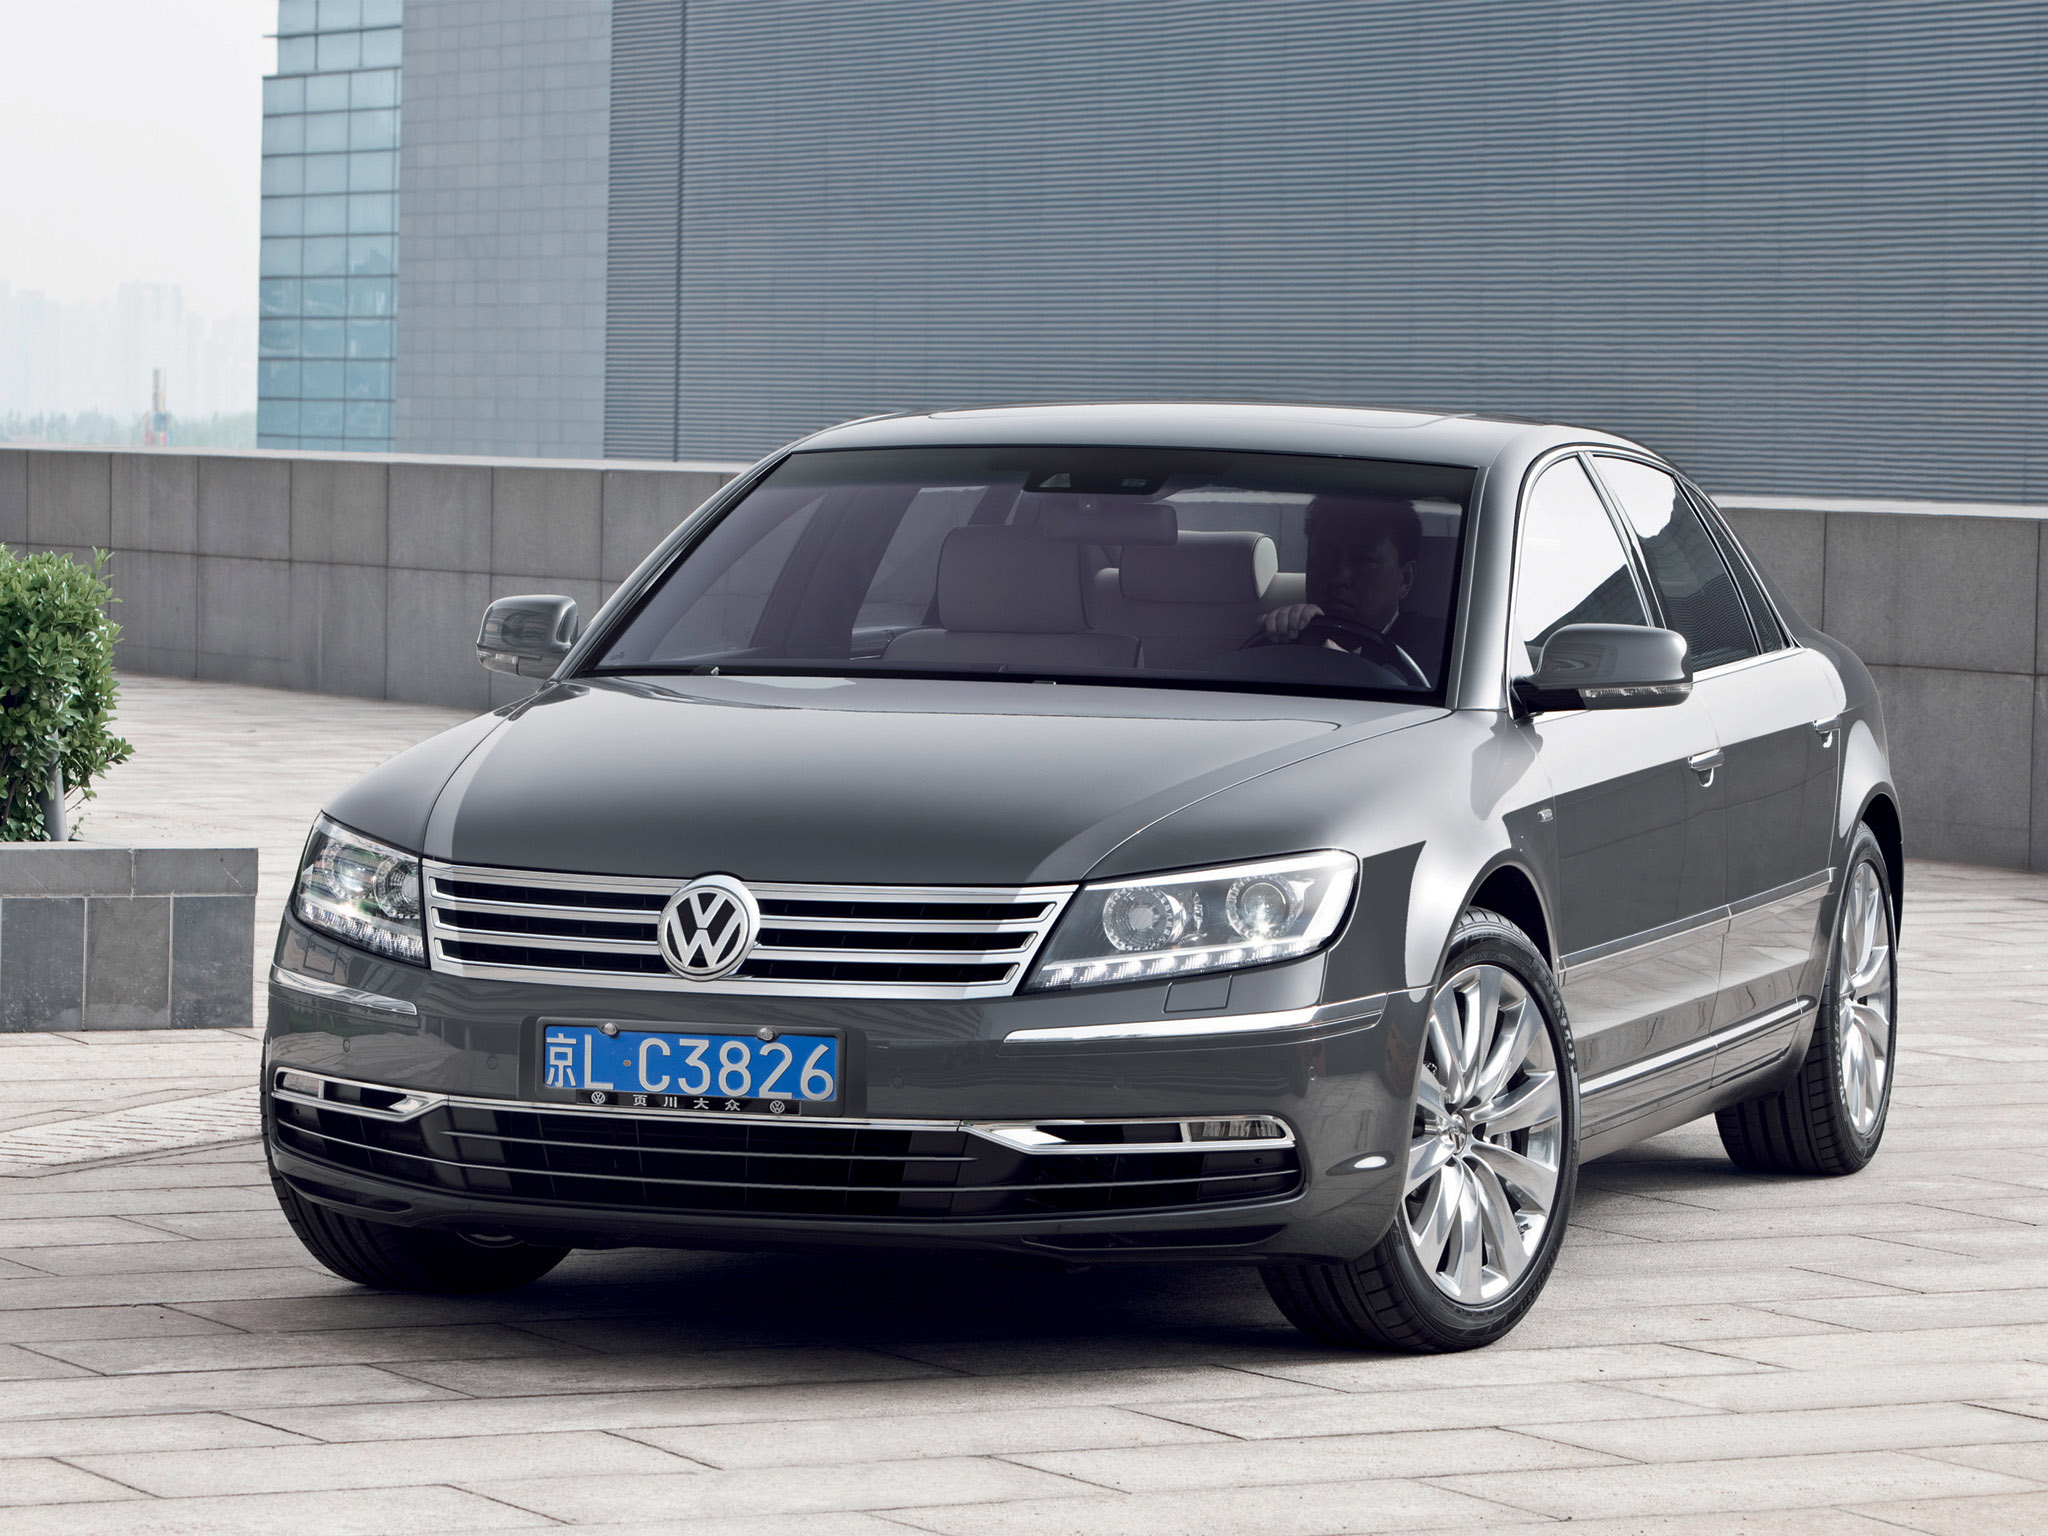 volkswagen phaeton w12 2010 volkswagen phaeton w12 2010 photo 04 car in pictures car photo. Black Bedroom Furniture Sets. Home Design Ideas